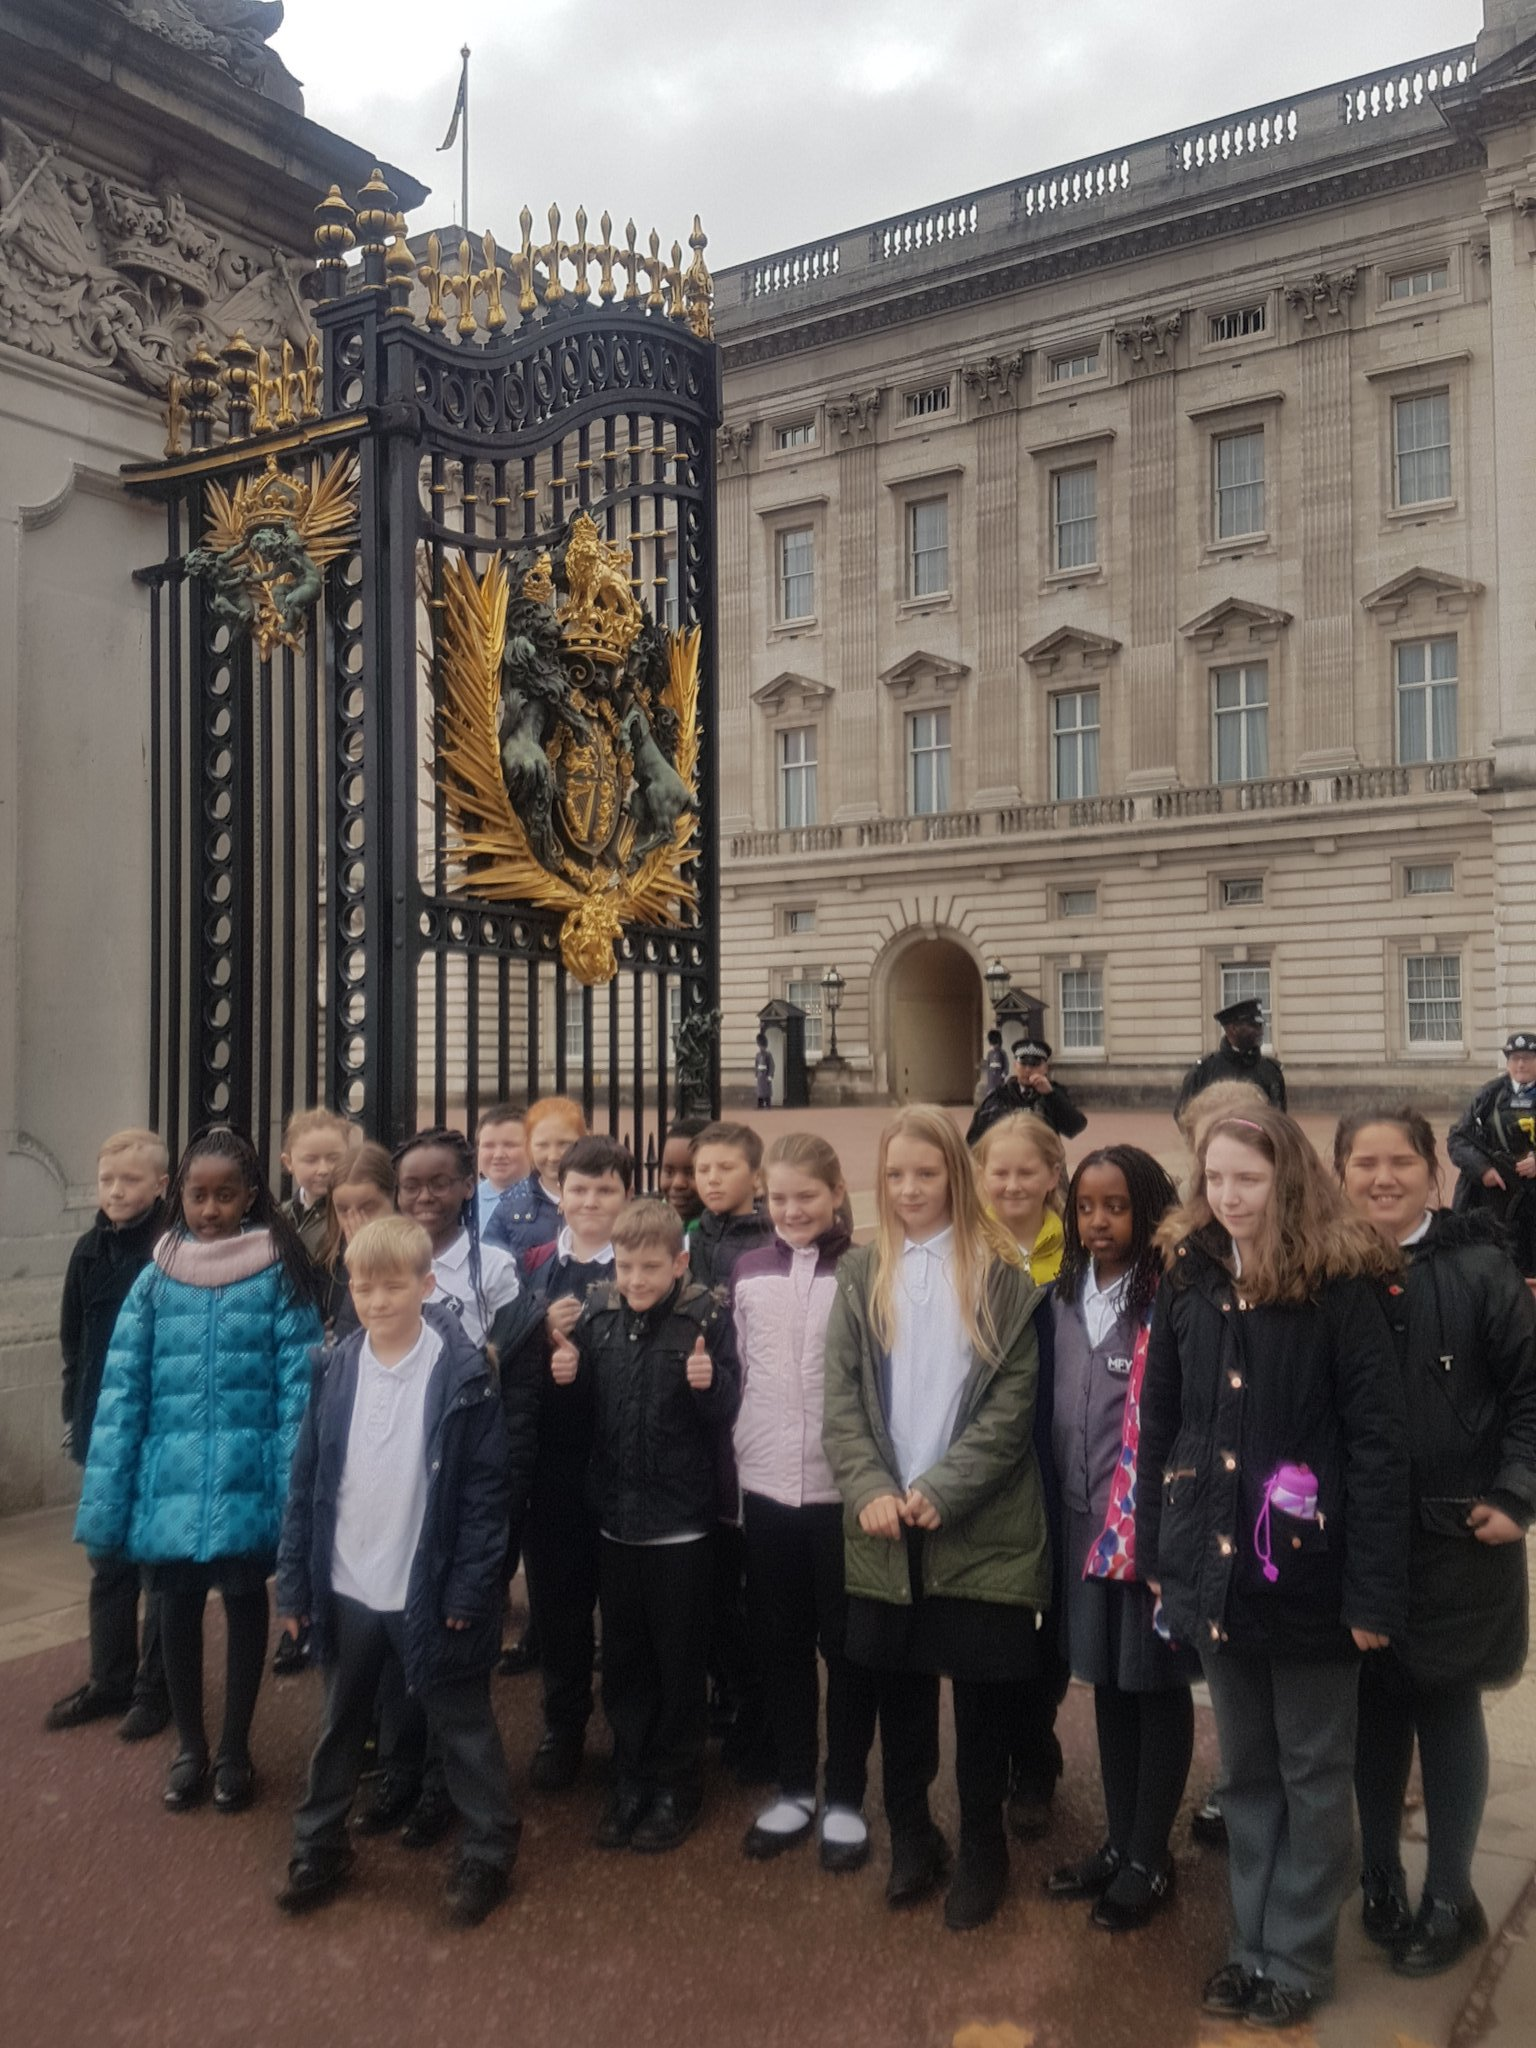 Jamie shares a Birthday with Prince Charles - so we stopped by to say hello & Happy Birthday!